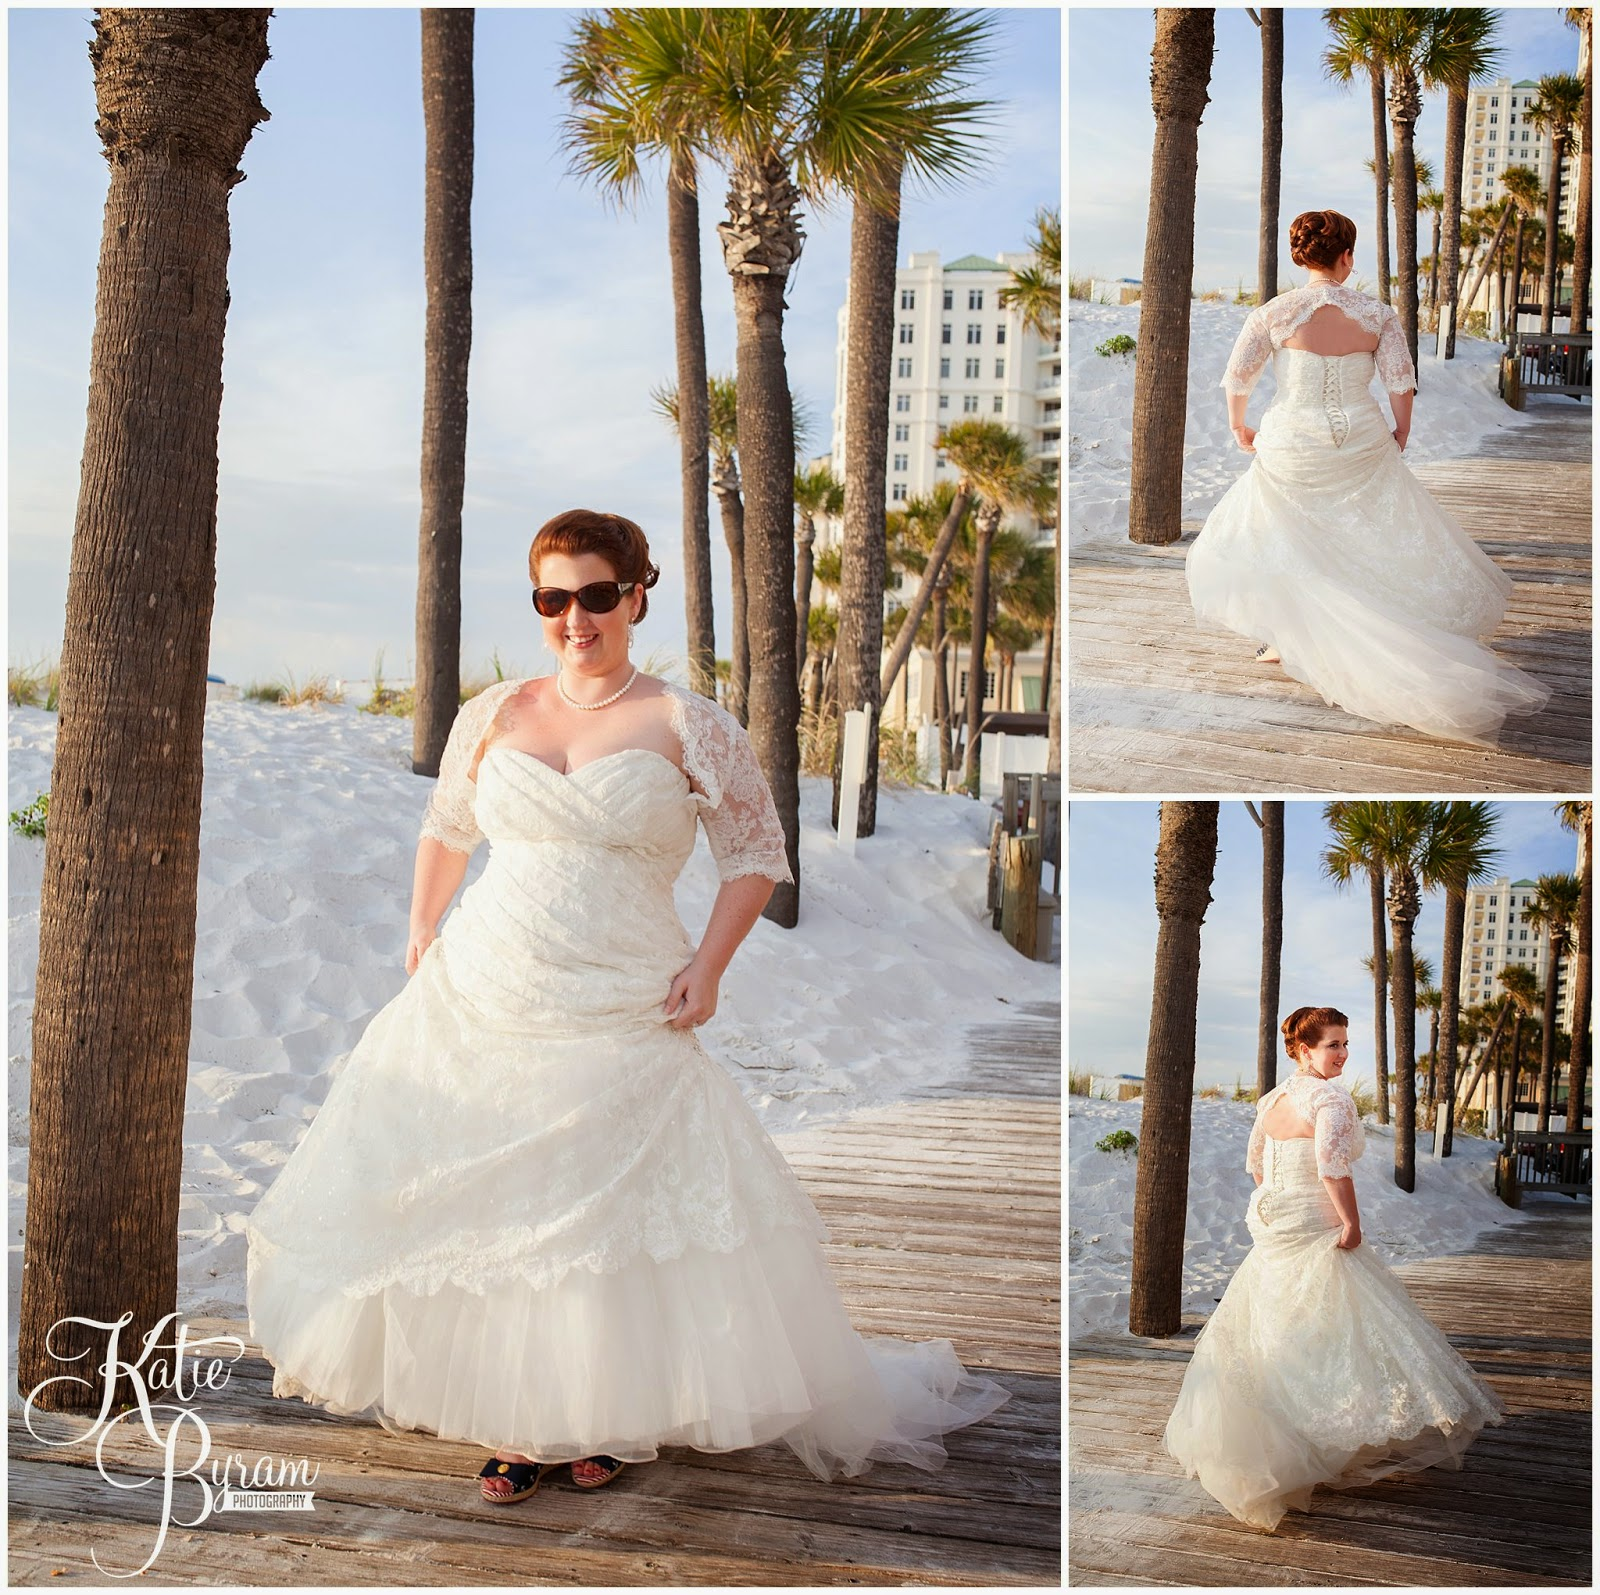 susans bridal sunderland, destination wedding, clearwater beach wedding, hilton clearwater beach wedding, katie byram photography, florida wedding